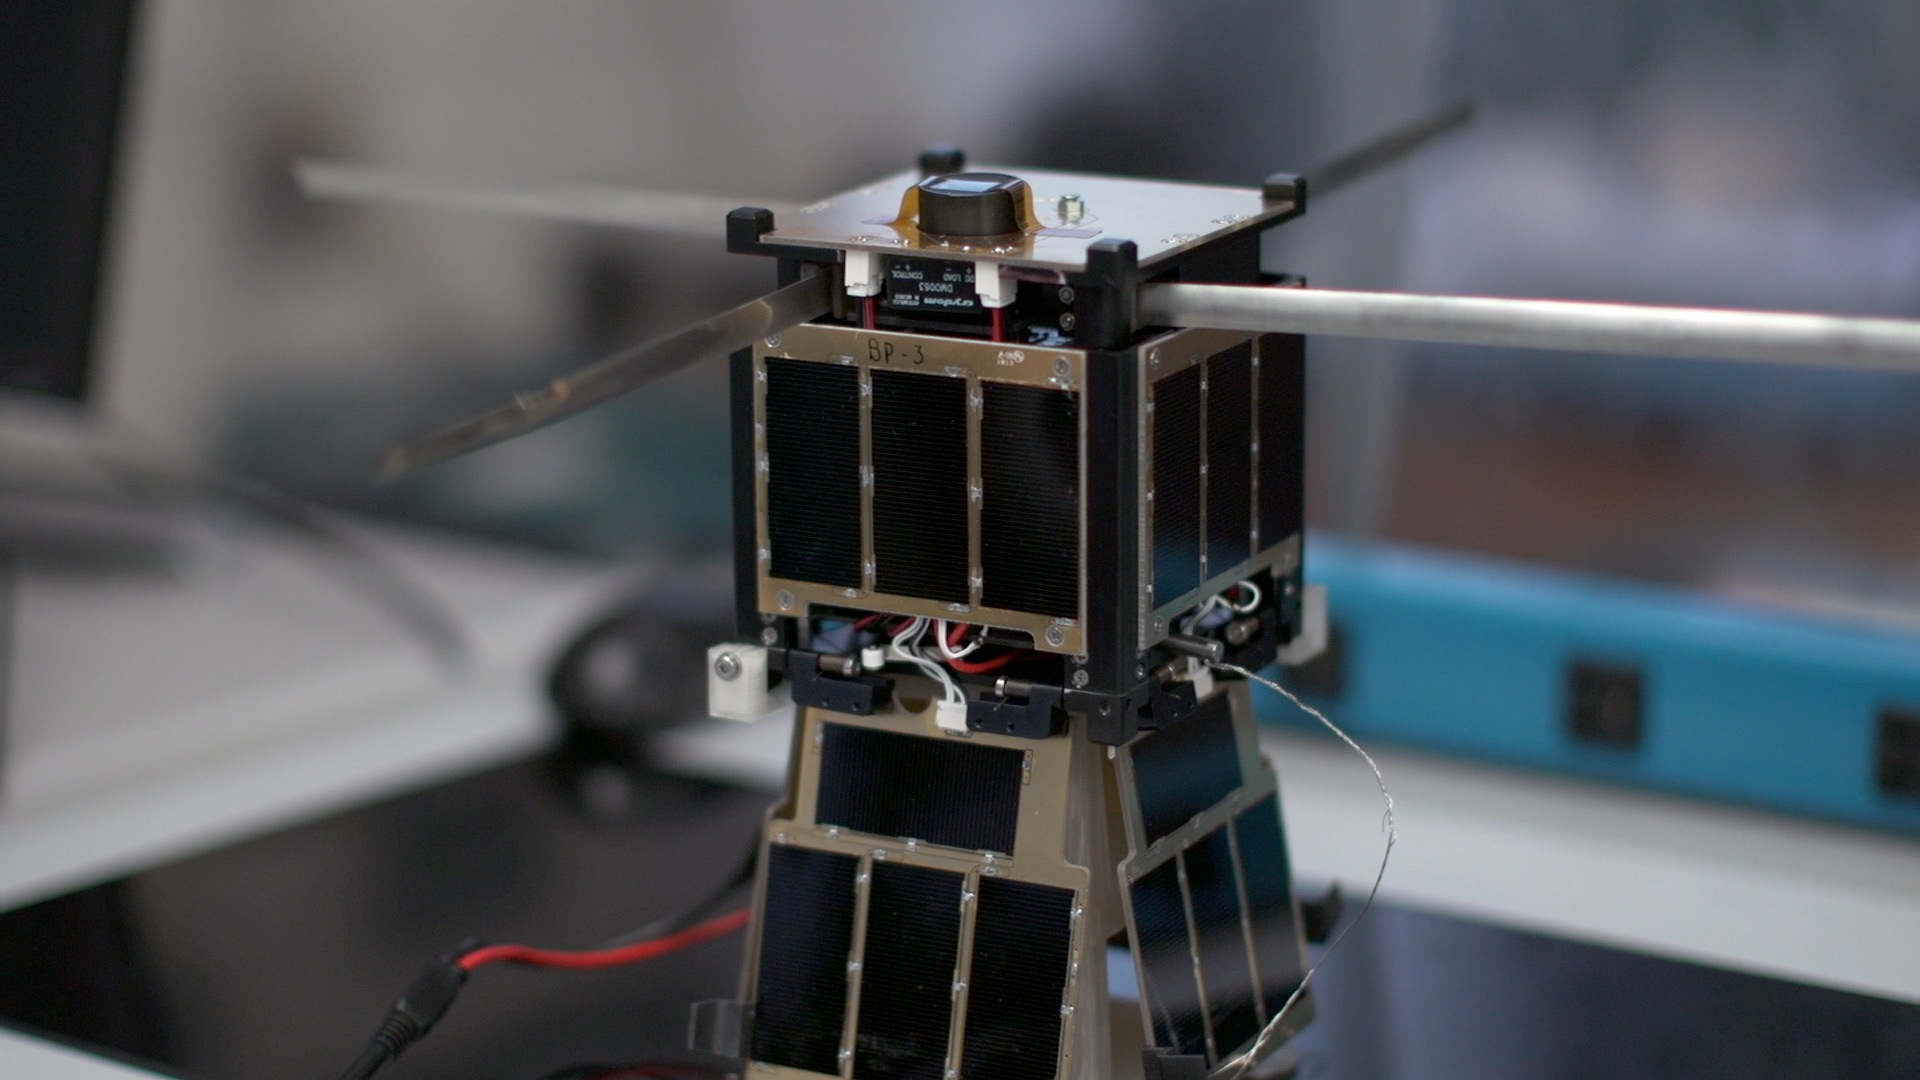 This student-built satellite, dubbed KySat-2, was launched into low-Earth orbit in November 2013.